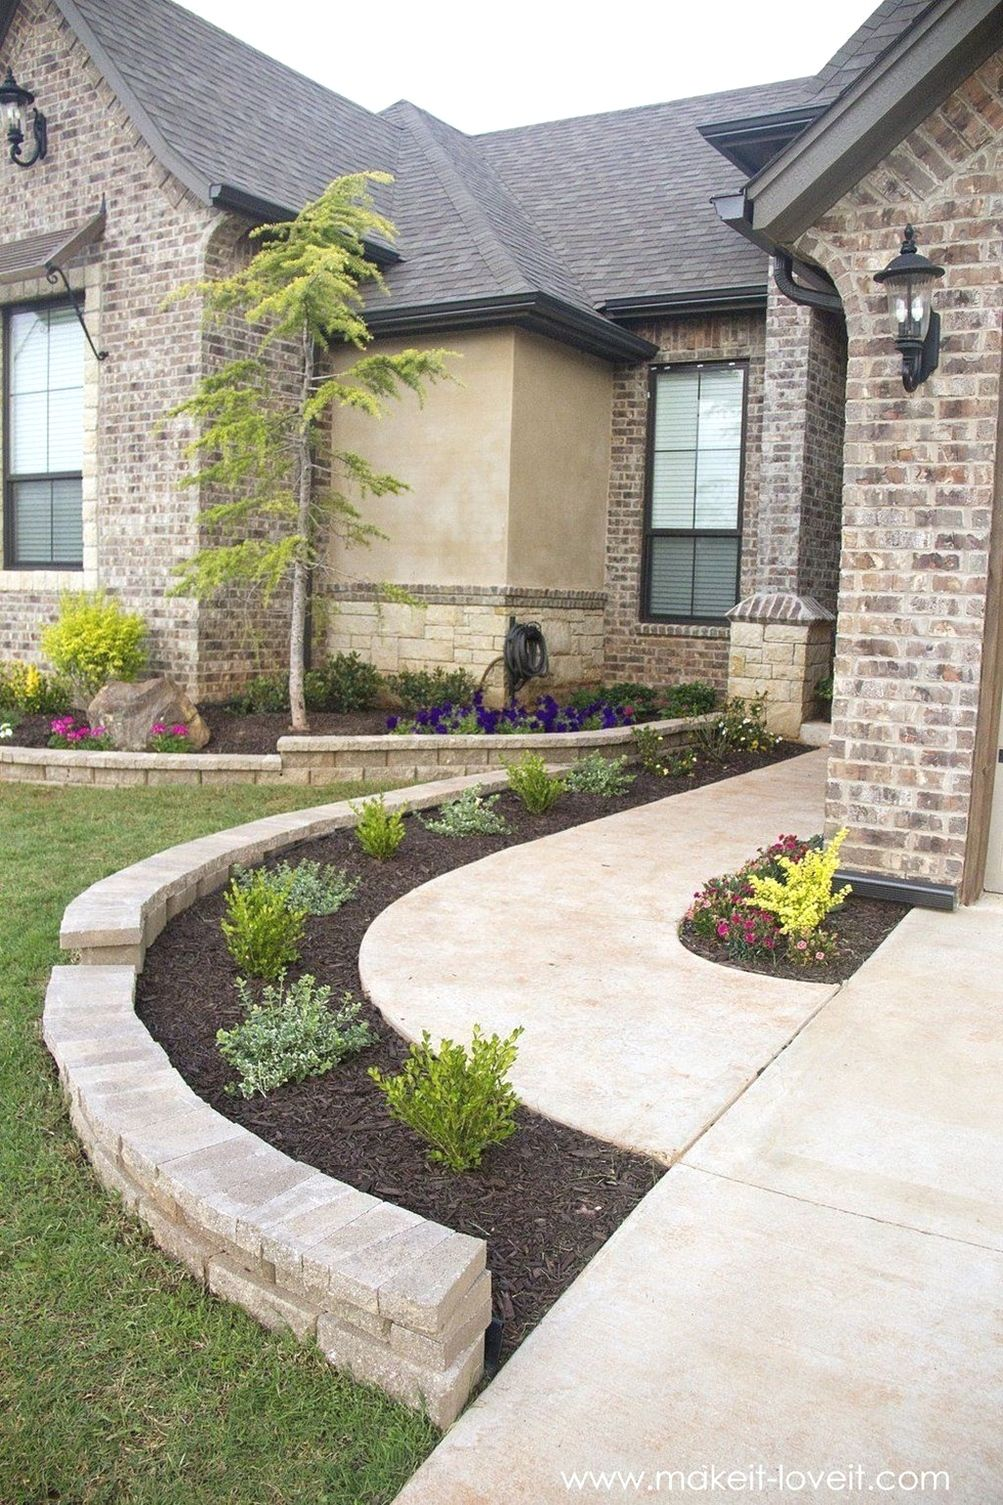 Garden Landscaping Omagh Cheap Landscaping Ideas For Front Yard Front Yard Landscaping Small Front Yard Landscaping